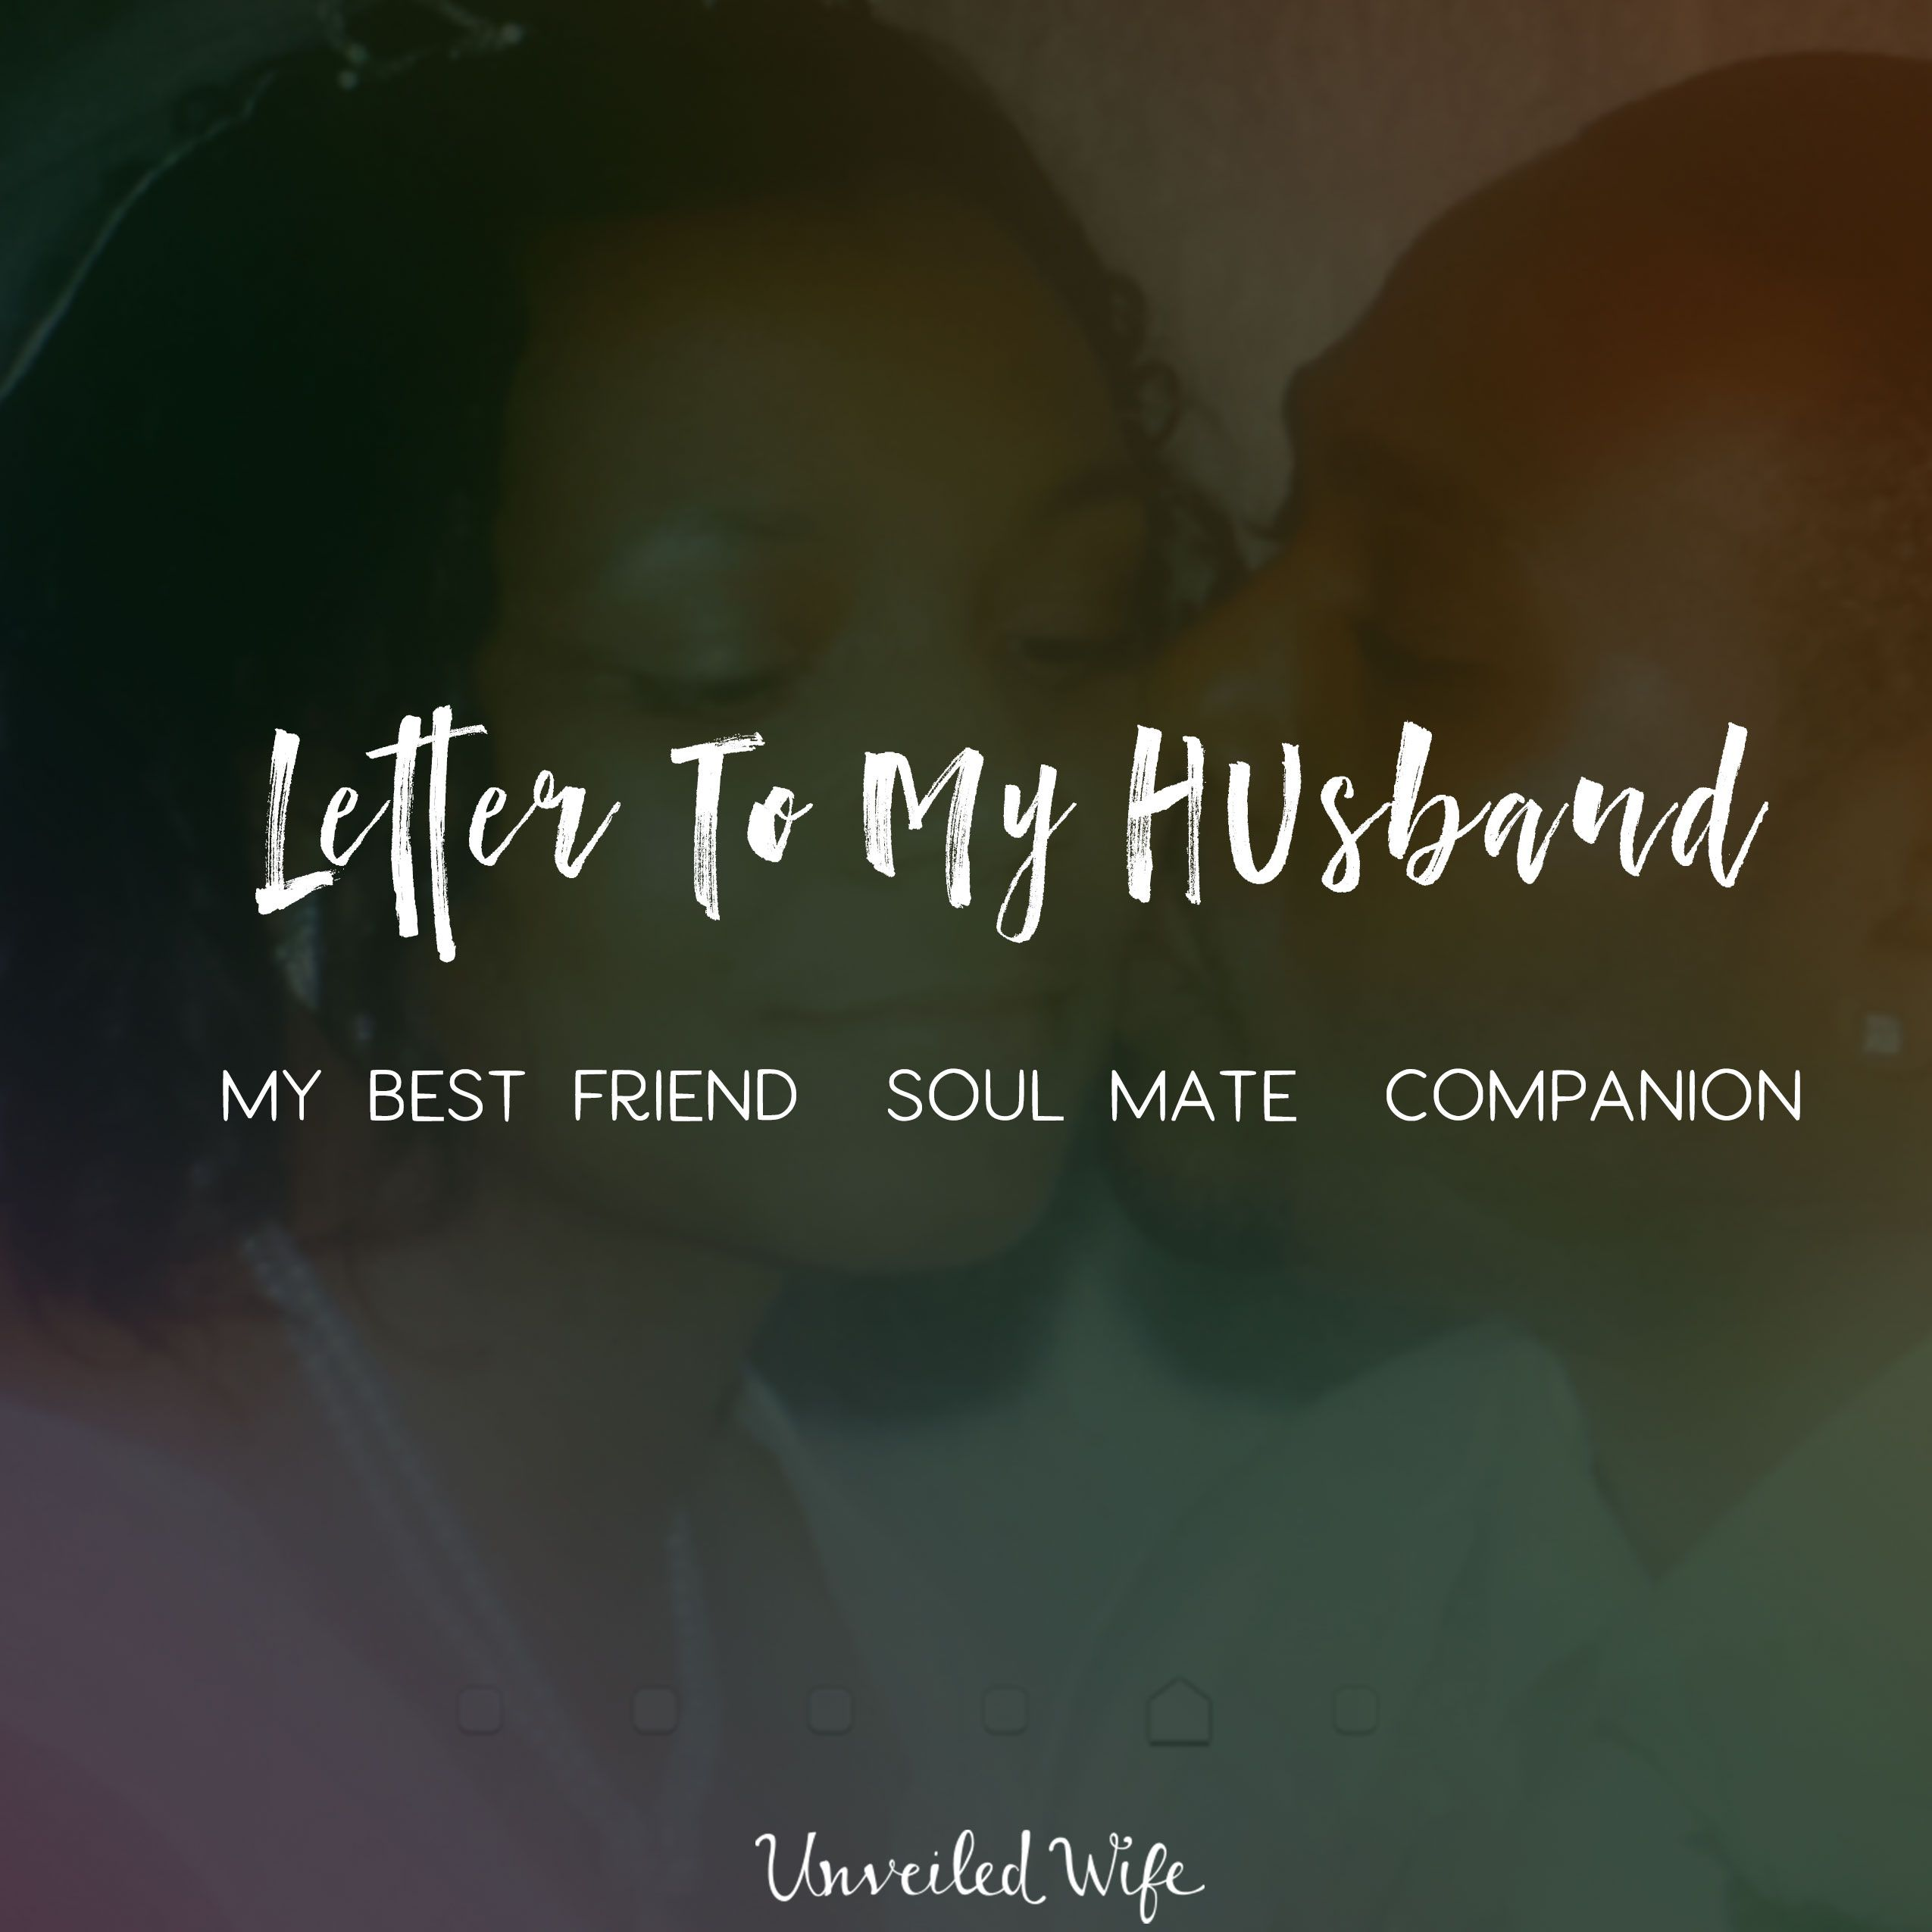 Letter To My Husband Best Friend Soul Mate Companion